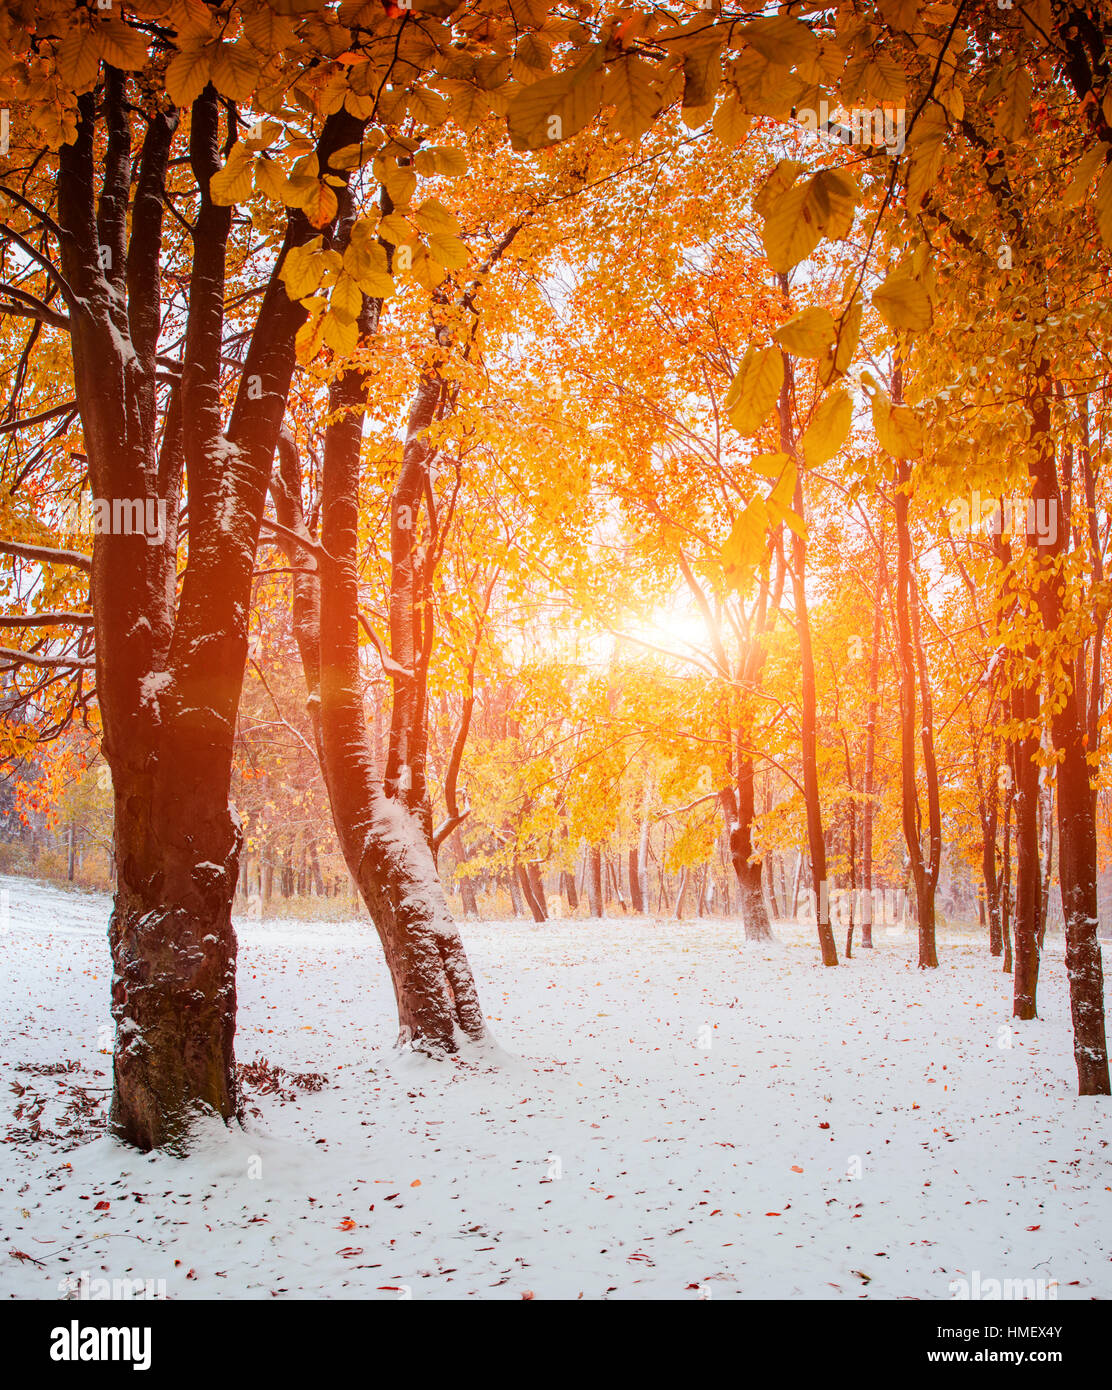 First snow in the forest - Stock Image